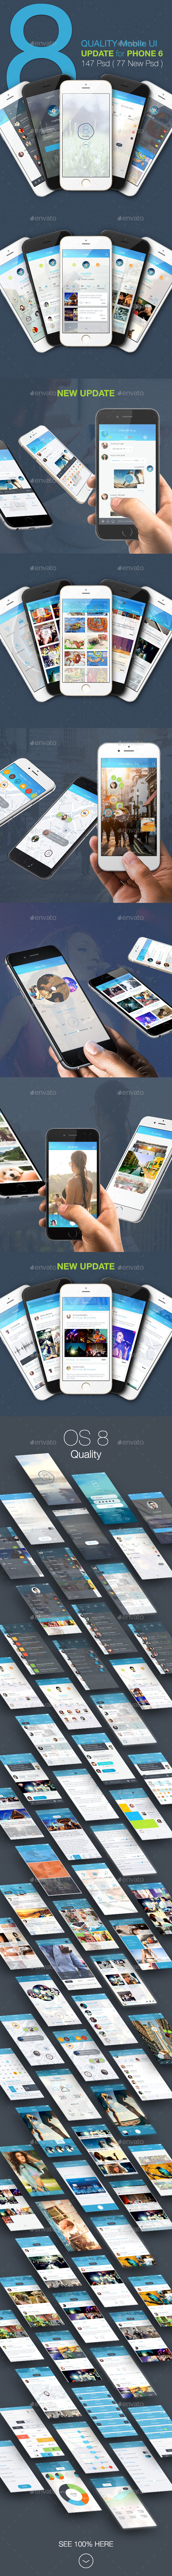 OS8 Quality - Mobile UI Kit - User Interfaces Web Elements